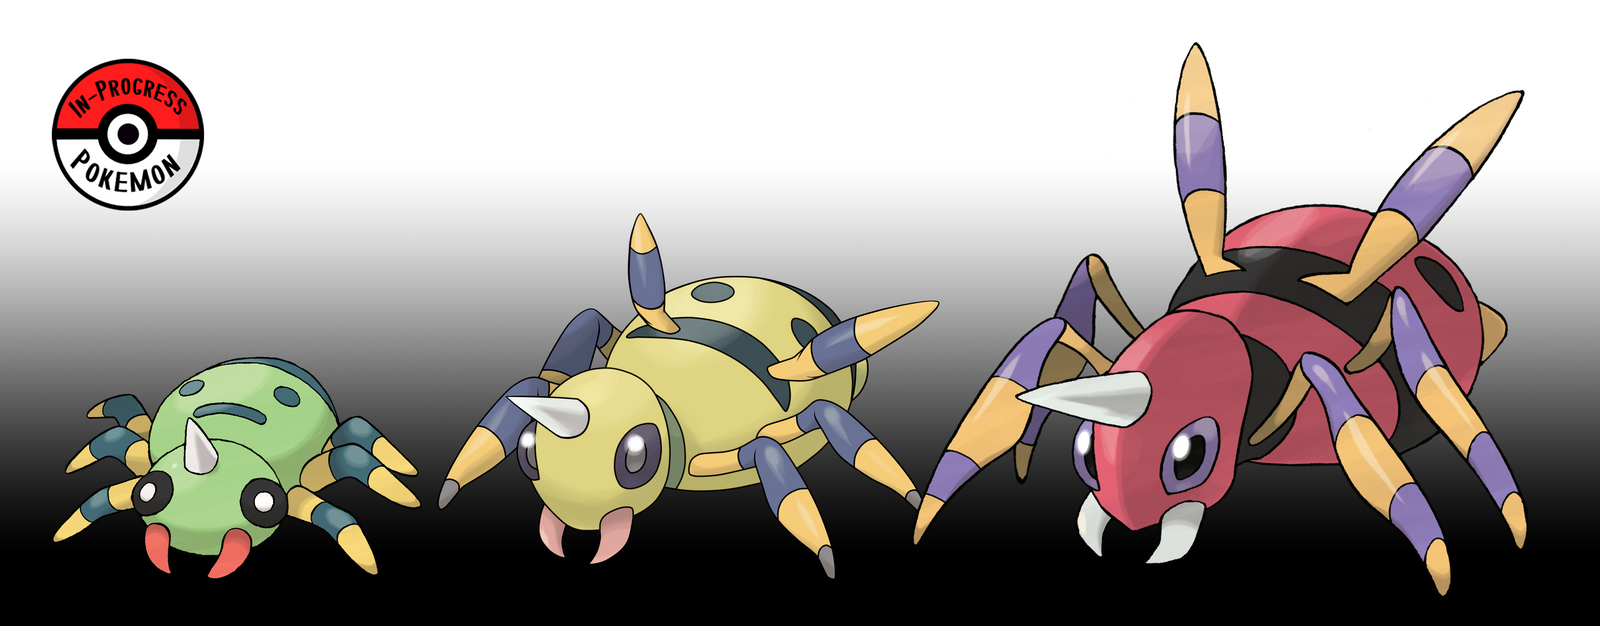 167 - 168 Spinarak Line by InProgressPokemon